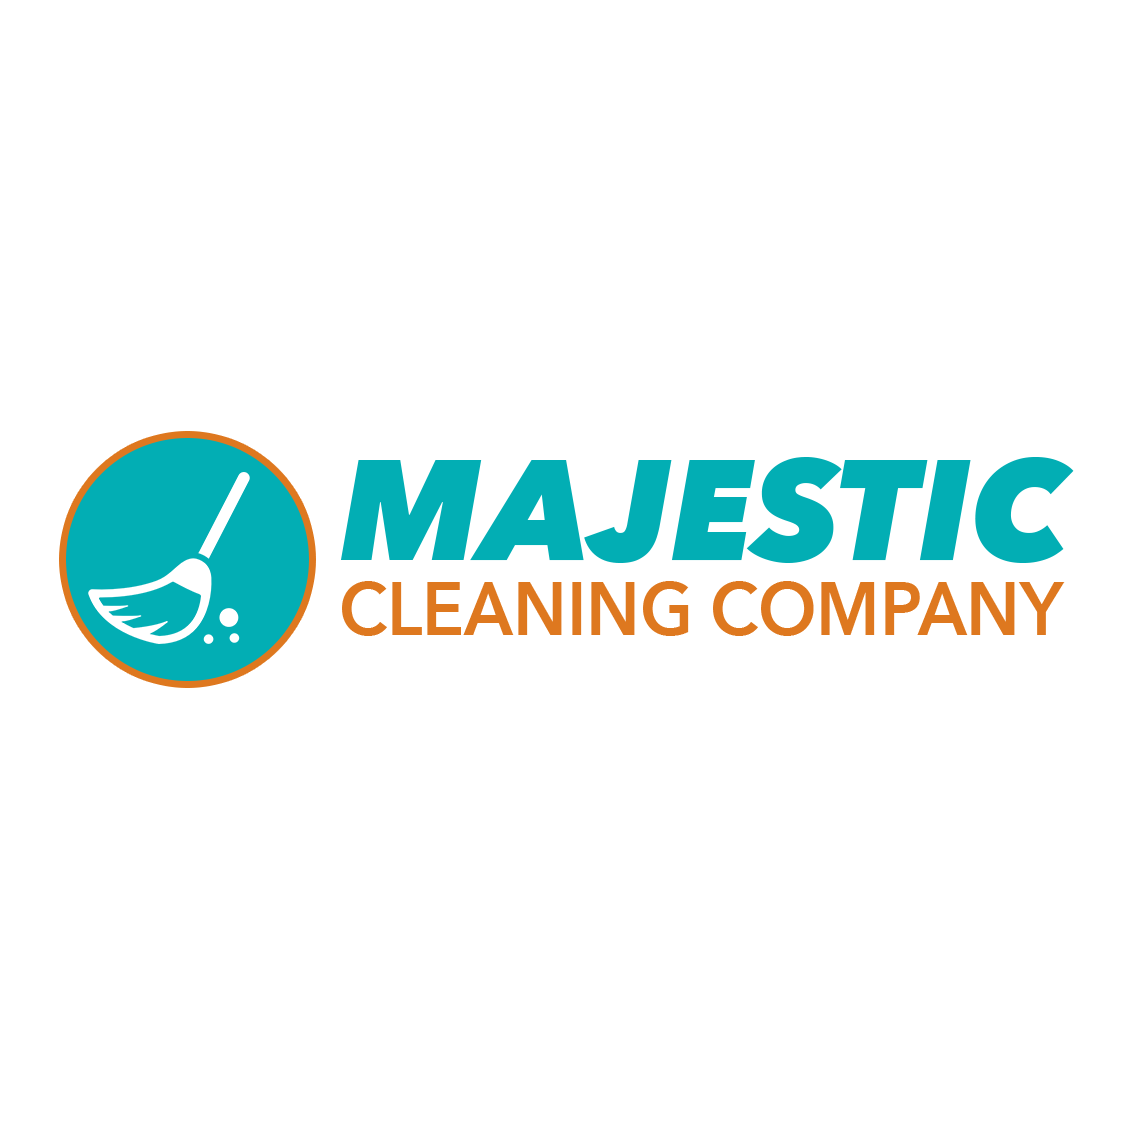 Majestic Cleaning Company